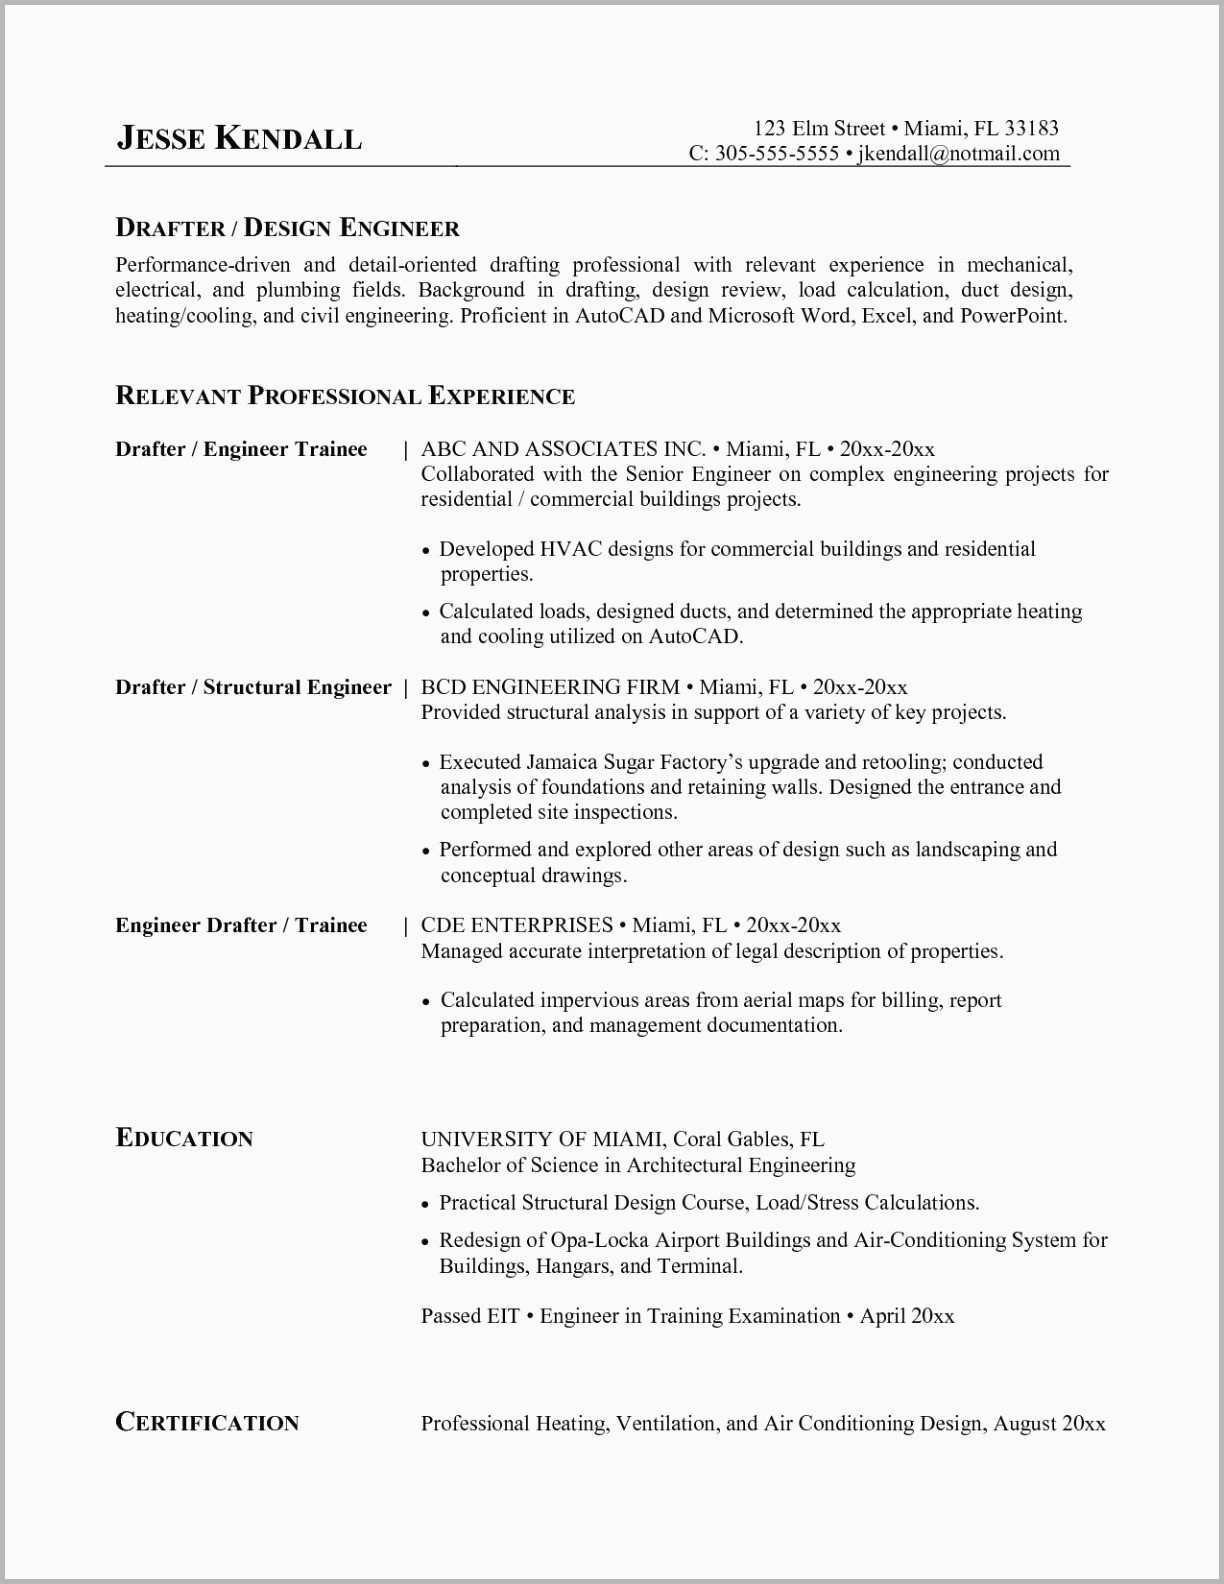 Resume Template for Electrician - Journeyman Electrician Resume Beautiful Template